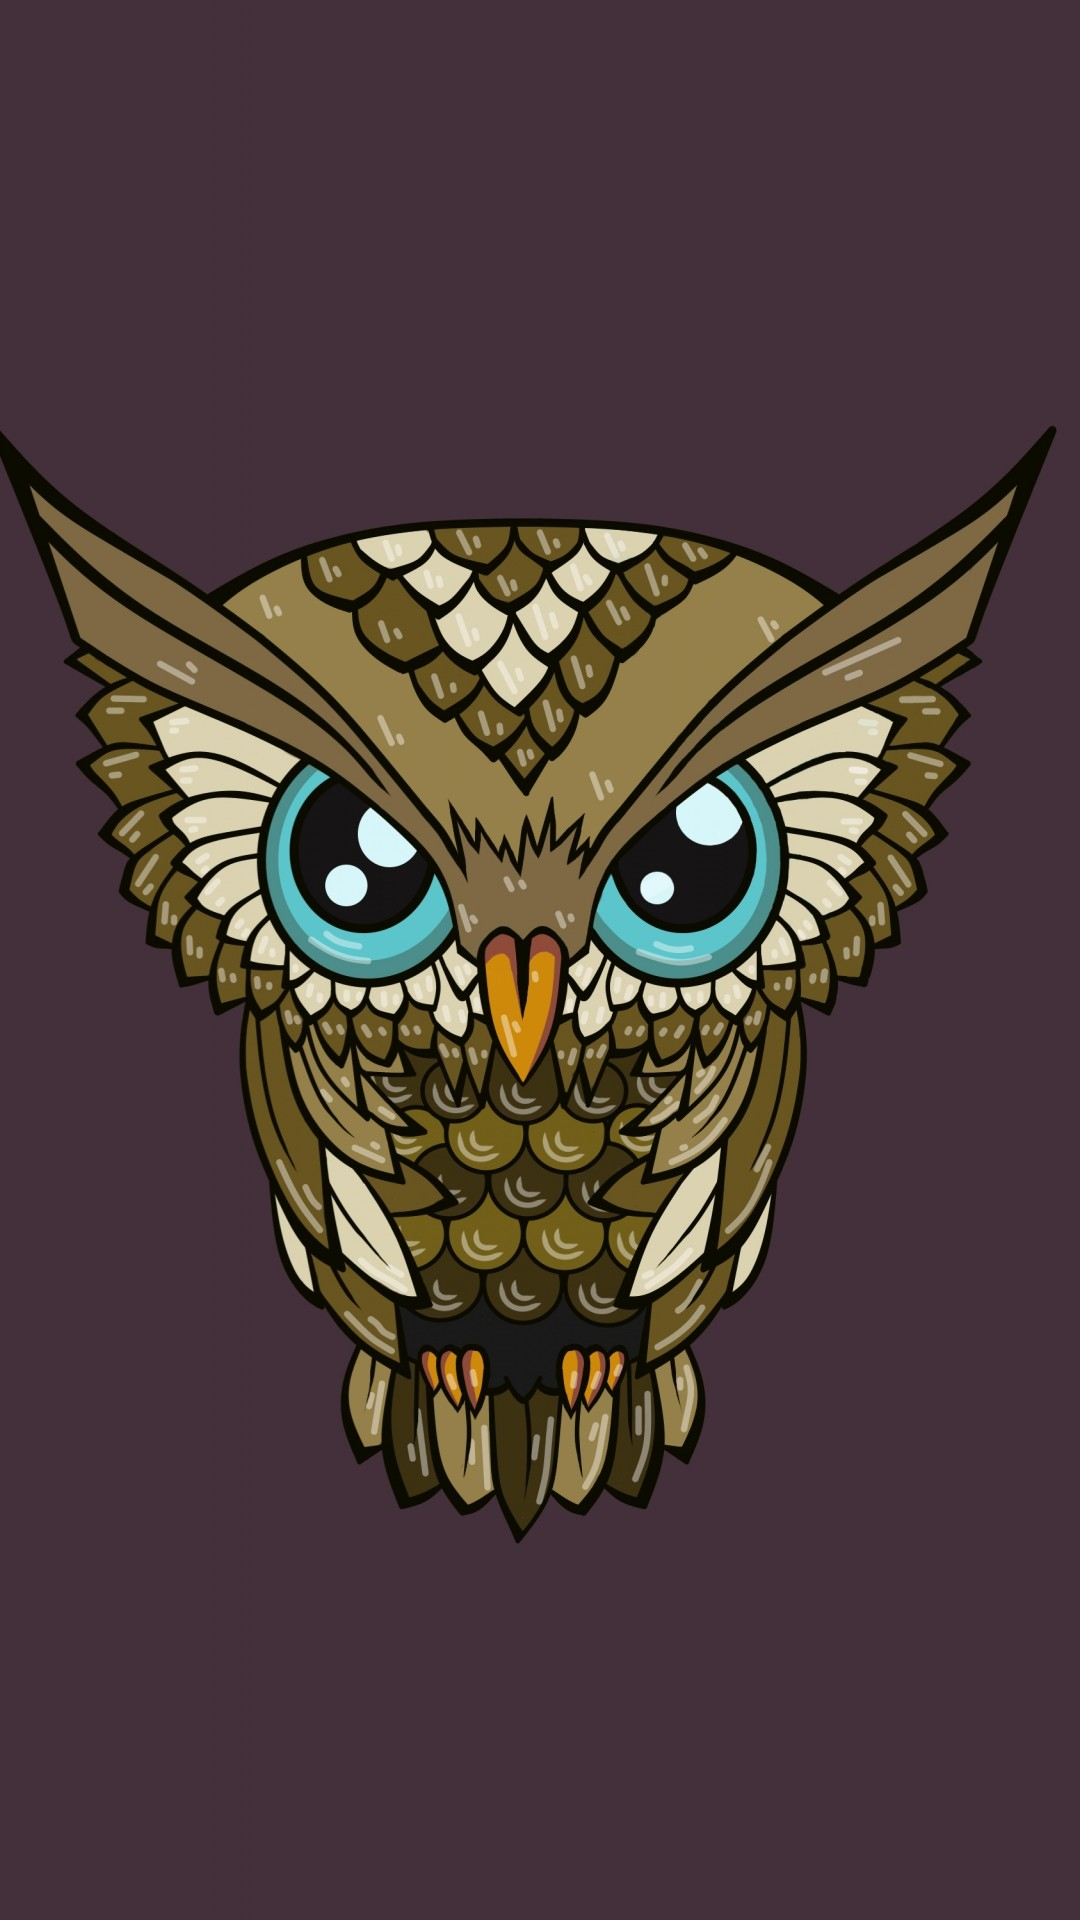 Bright Wallpapers For Iphone 6 Cute Owl Wallpaper 183 ①